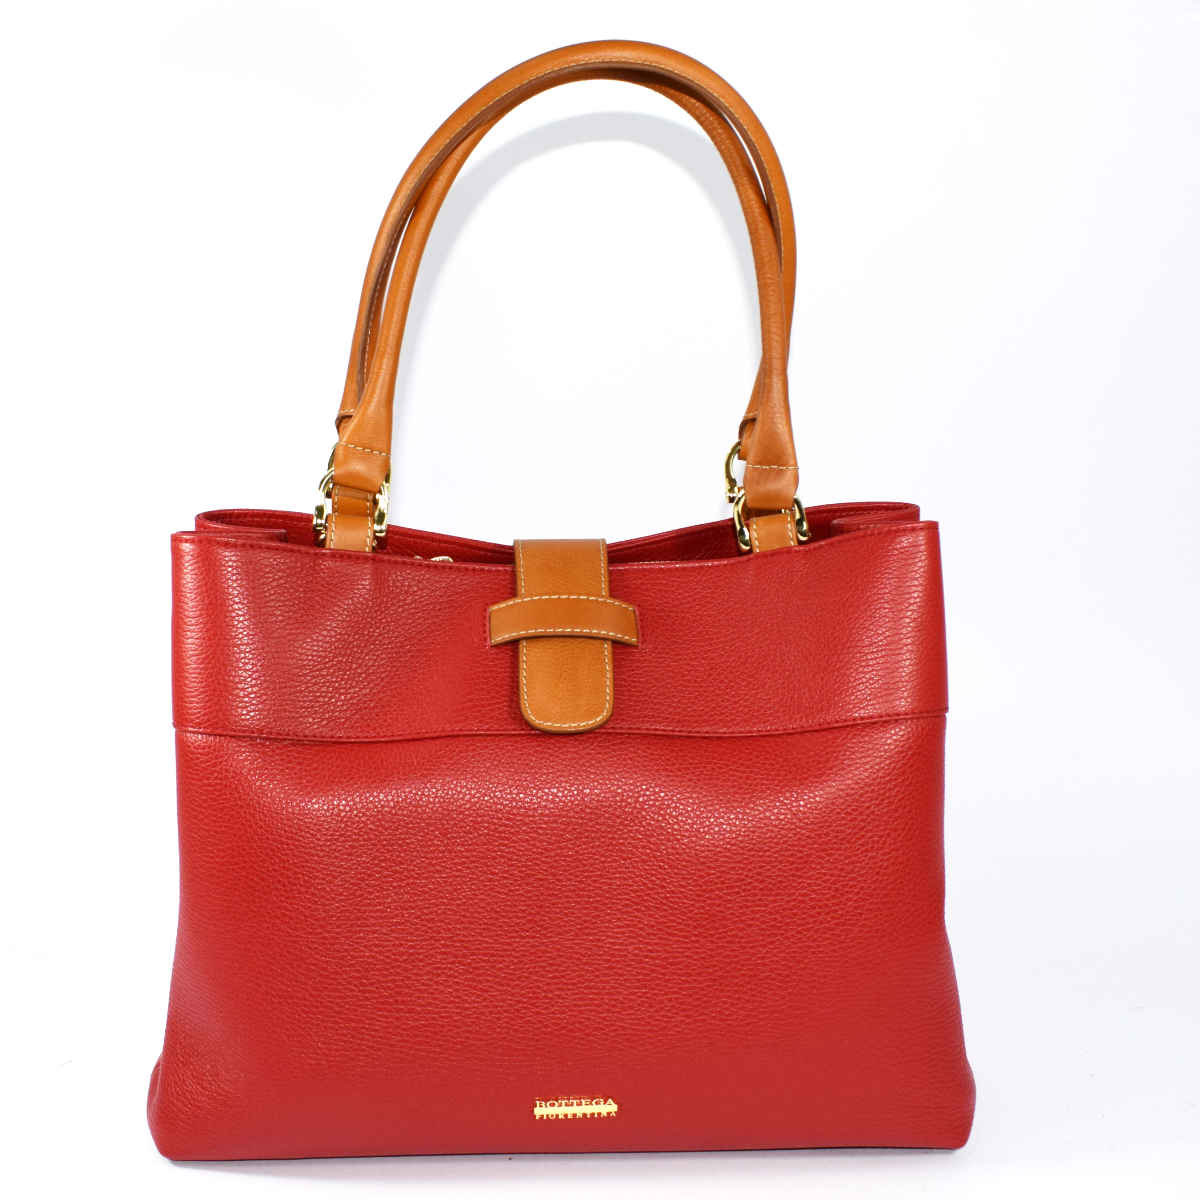 12710 BAG 2 HANDLES TWO-TONE by Bottega Fiorentina